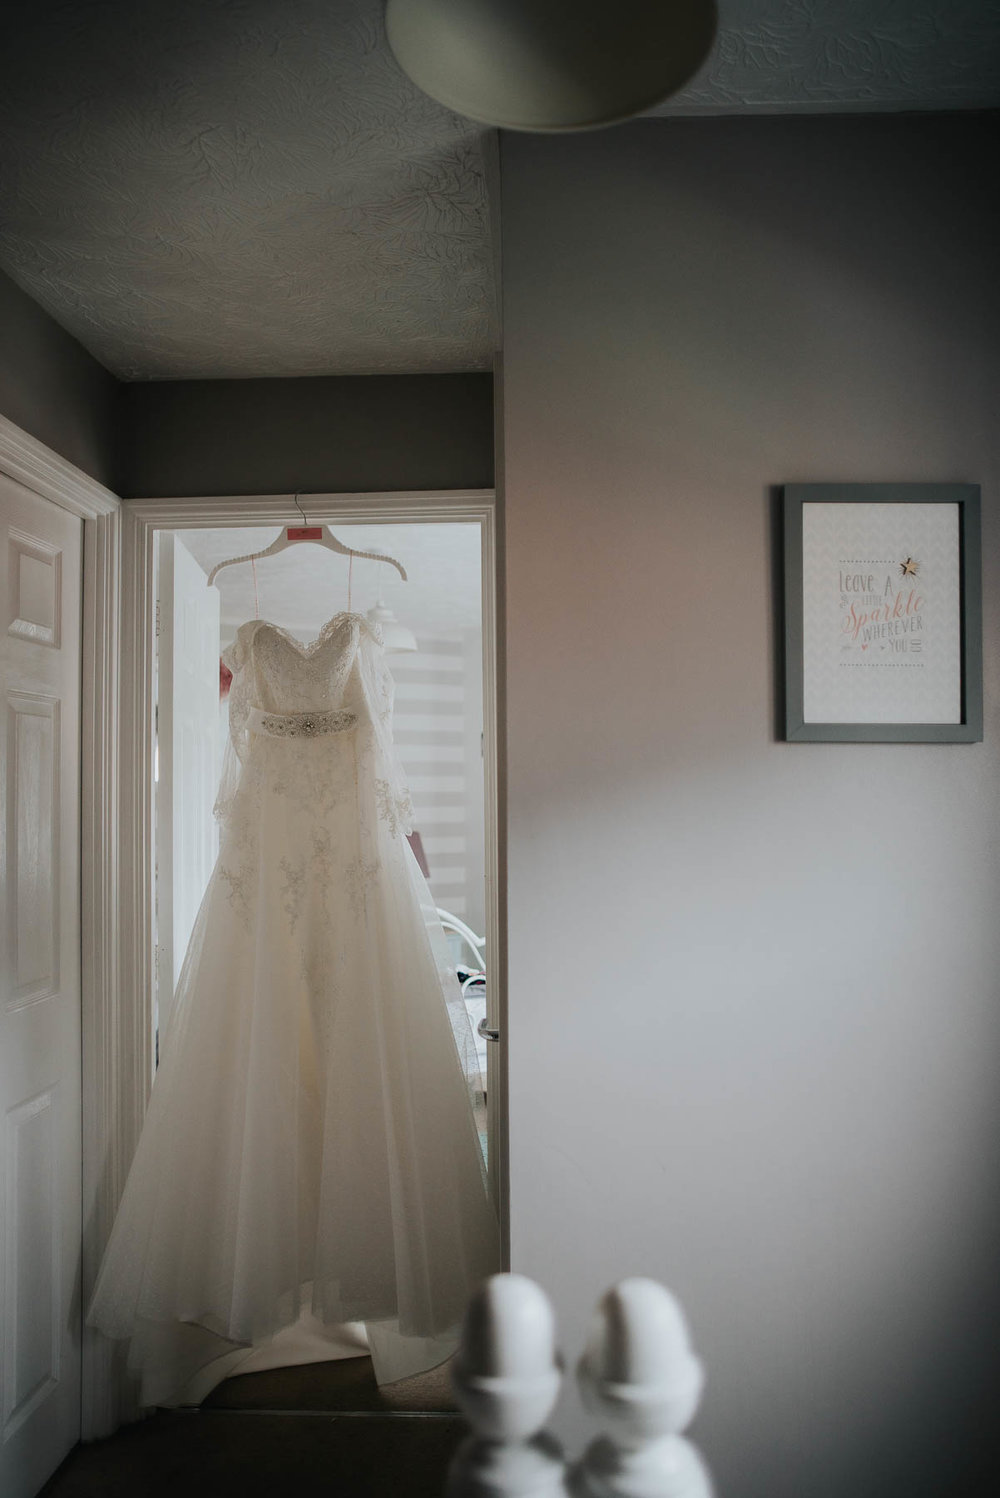 Alternative wedding photographer located in Essex, specializing in heartfelt, creative, documentary, and quirky wedding photographer (17).JPG